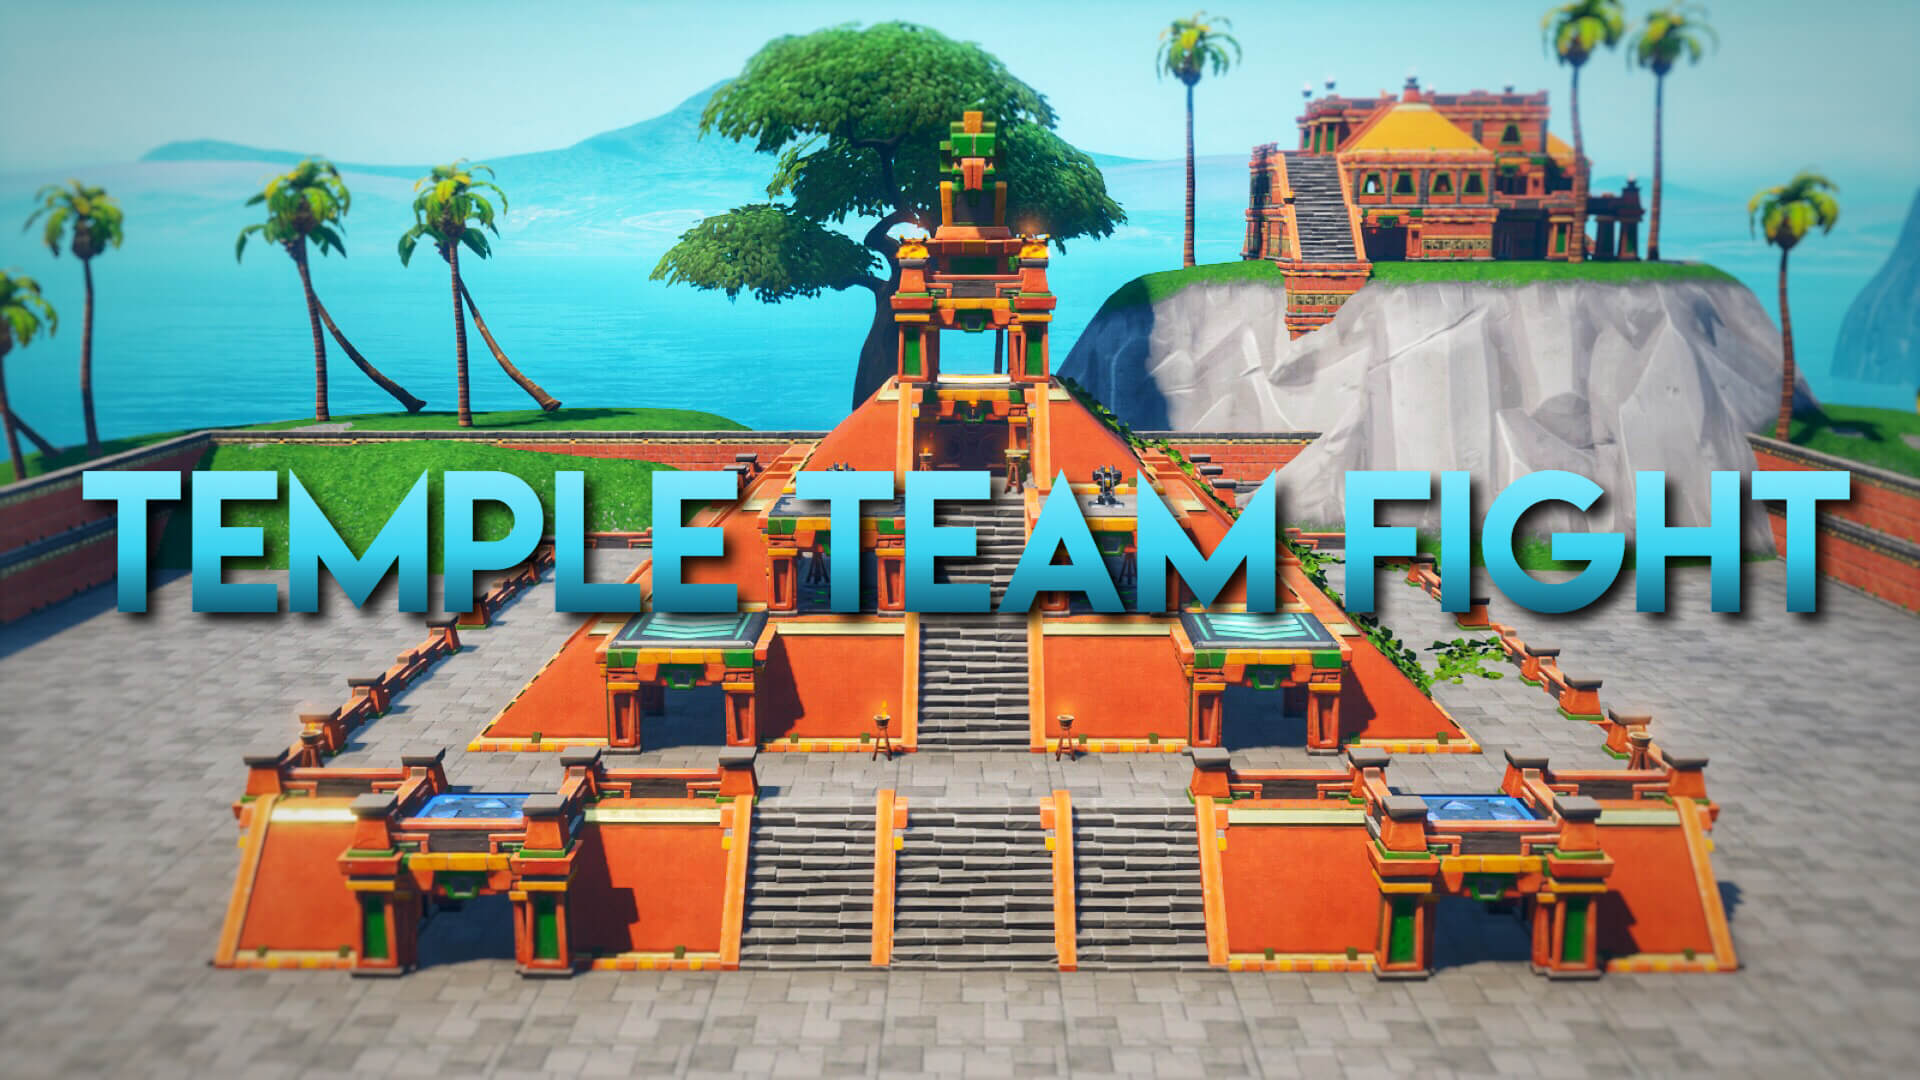 TEMPLE TEAM FIGHT